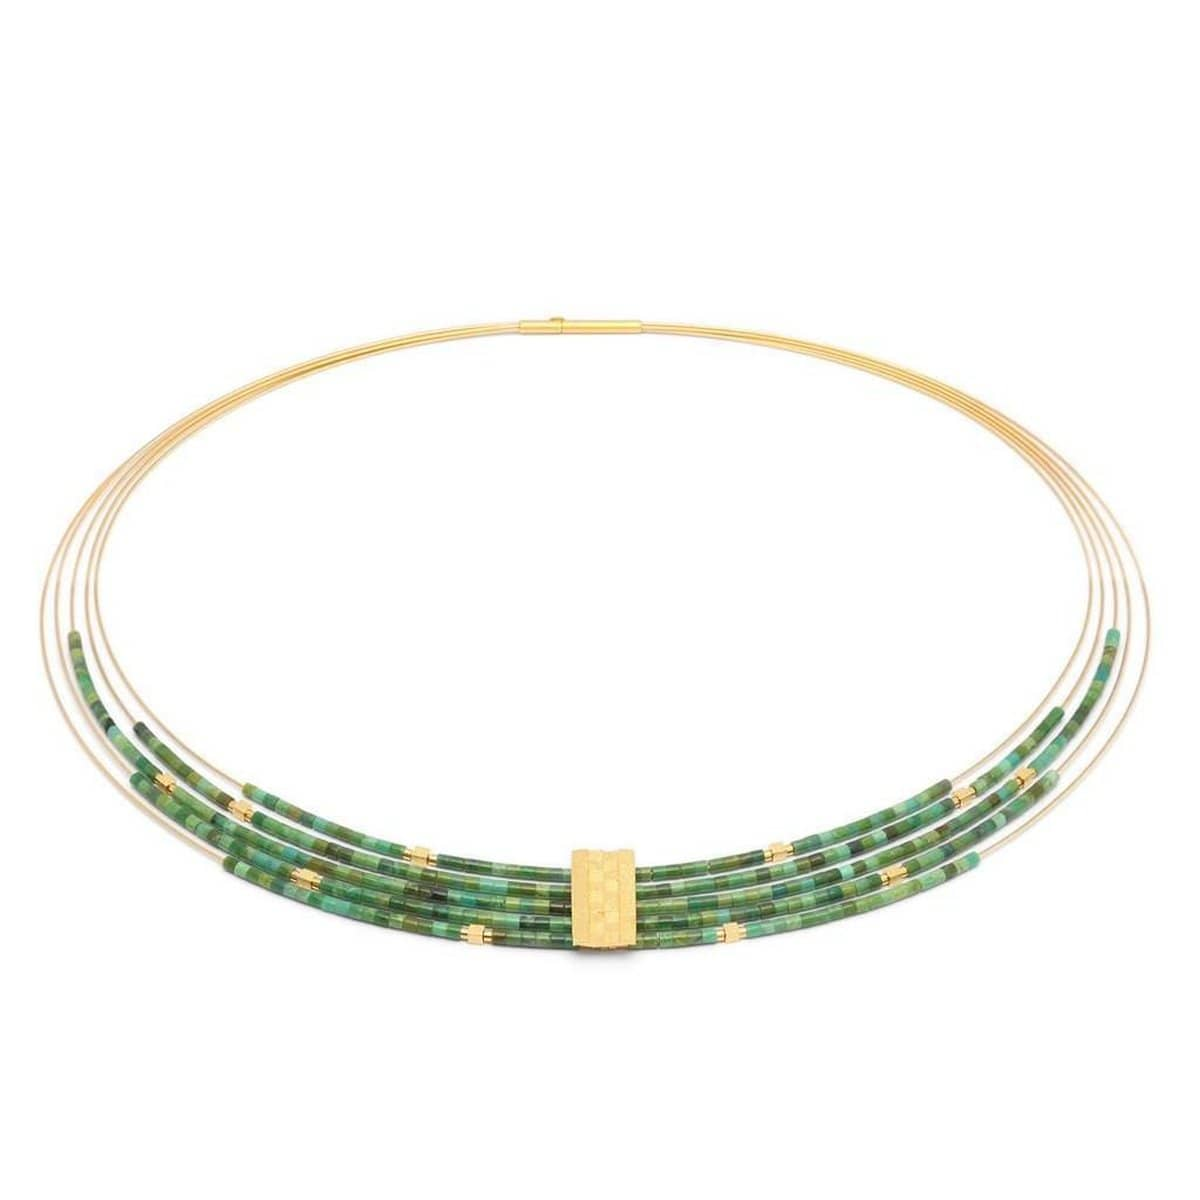 Orfea Green Turquoise Necklace - 85185356-Bernd Wolf-Renee Taylor Gallery